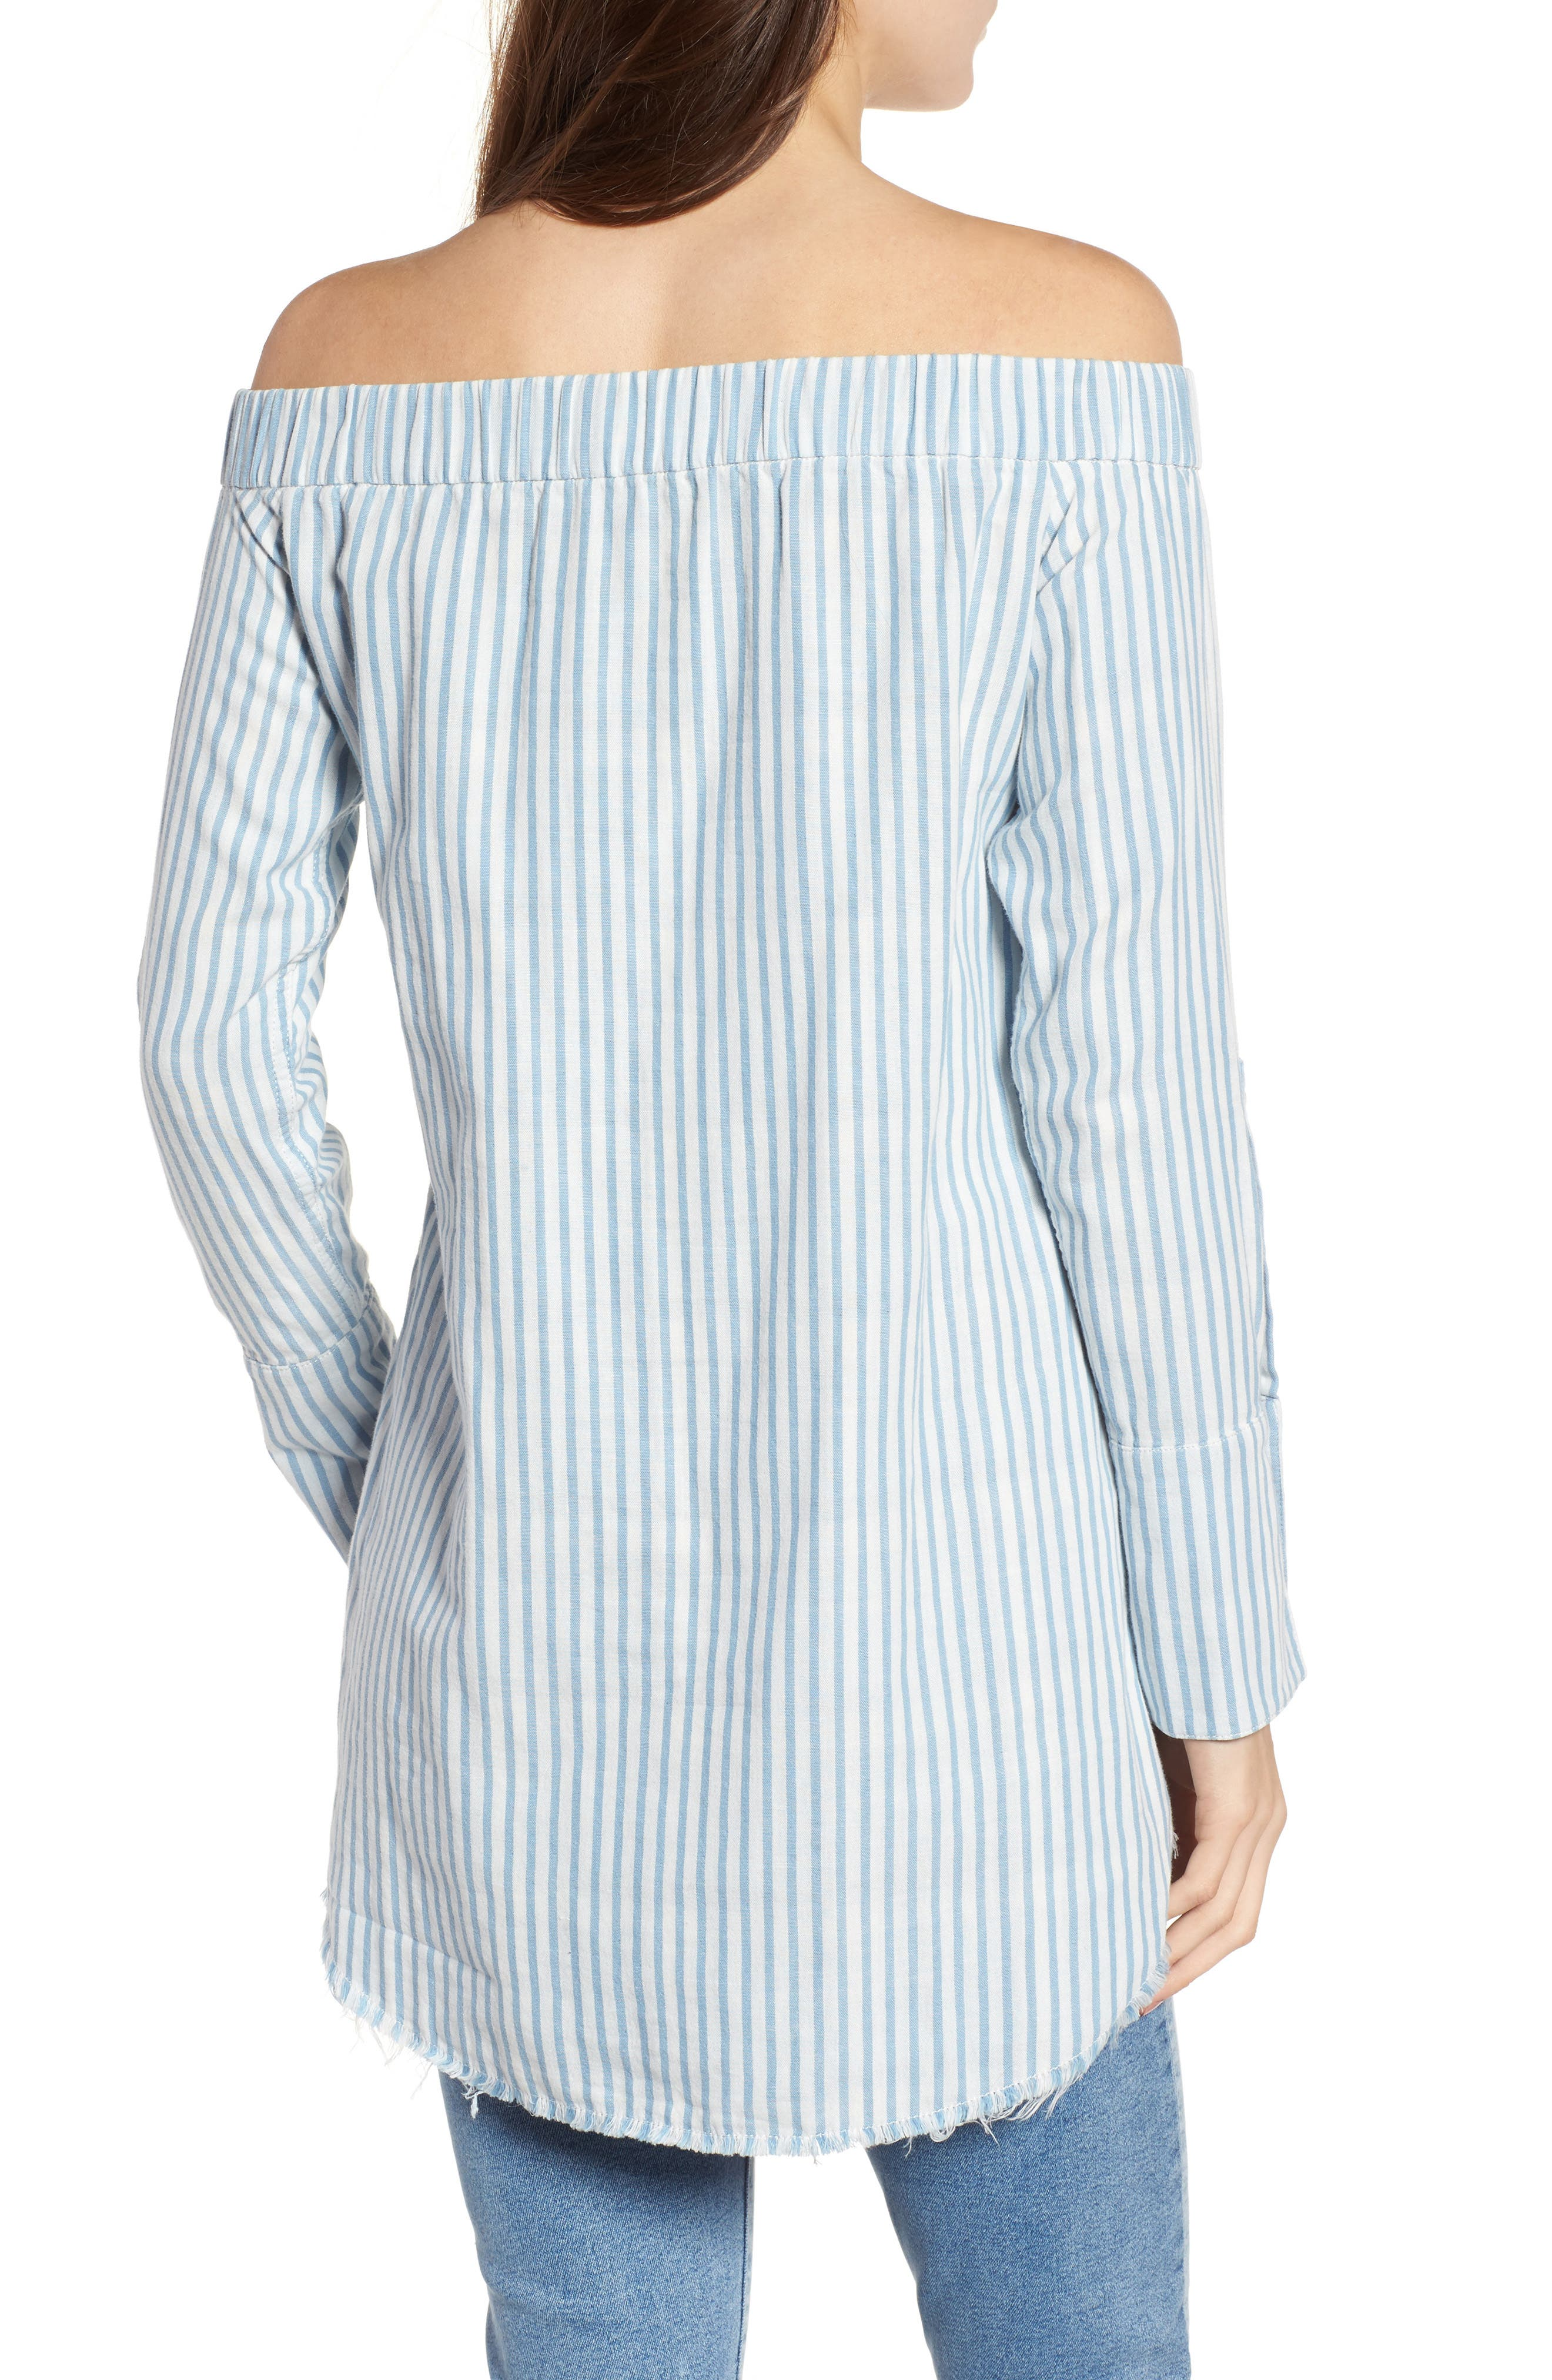 Adelphi & Willoughby Off the Shoulder Shirt,                             Alternate thumbnail 2, color,                             430